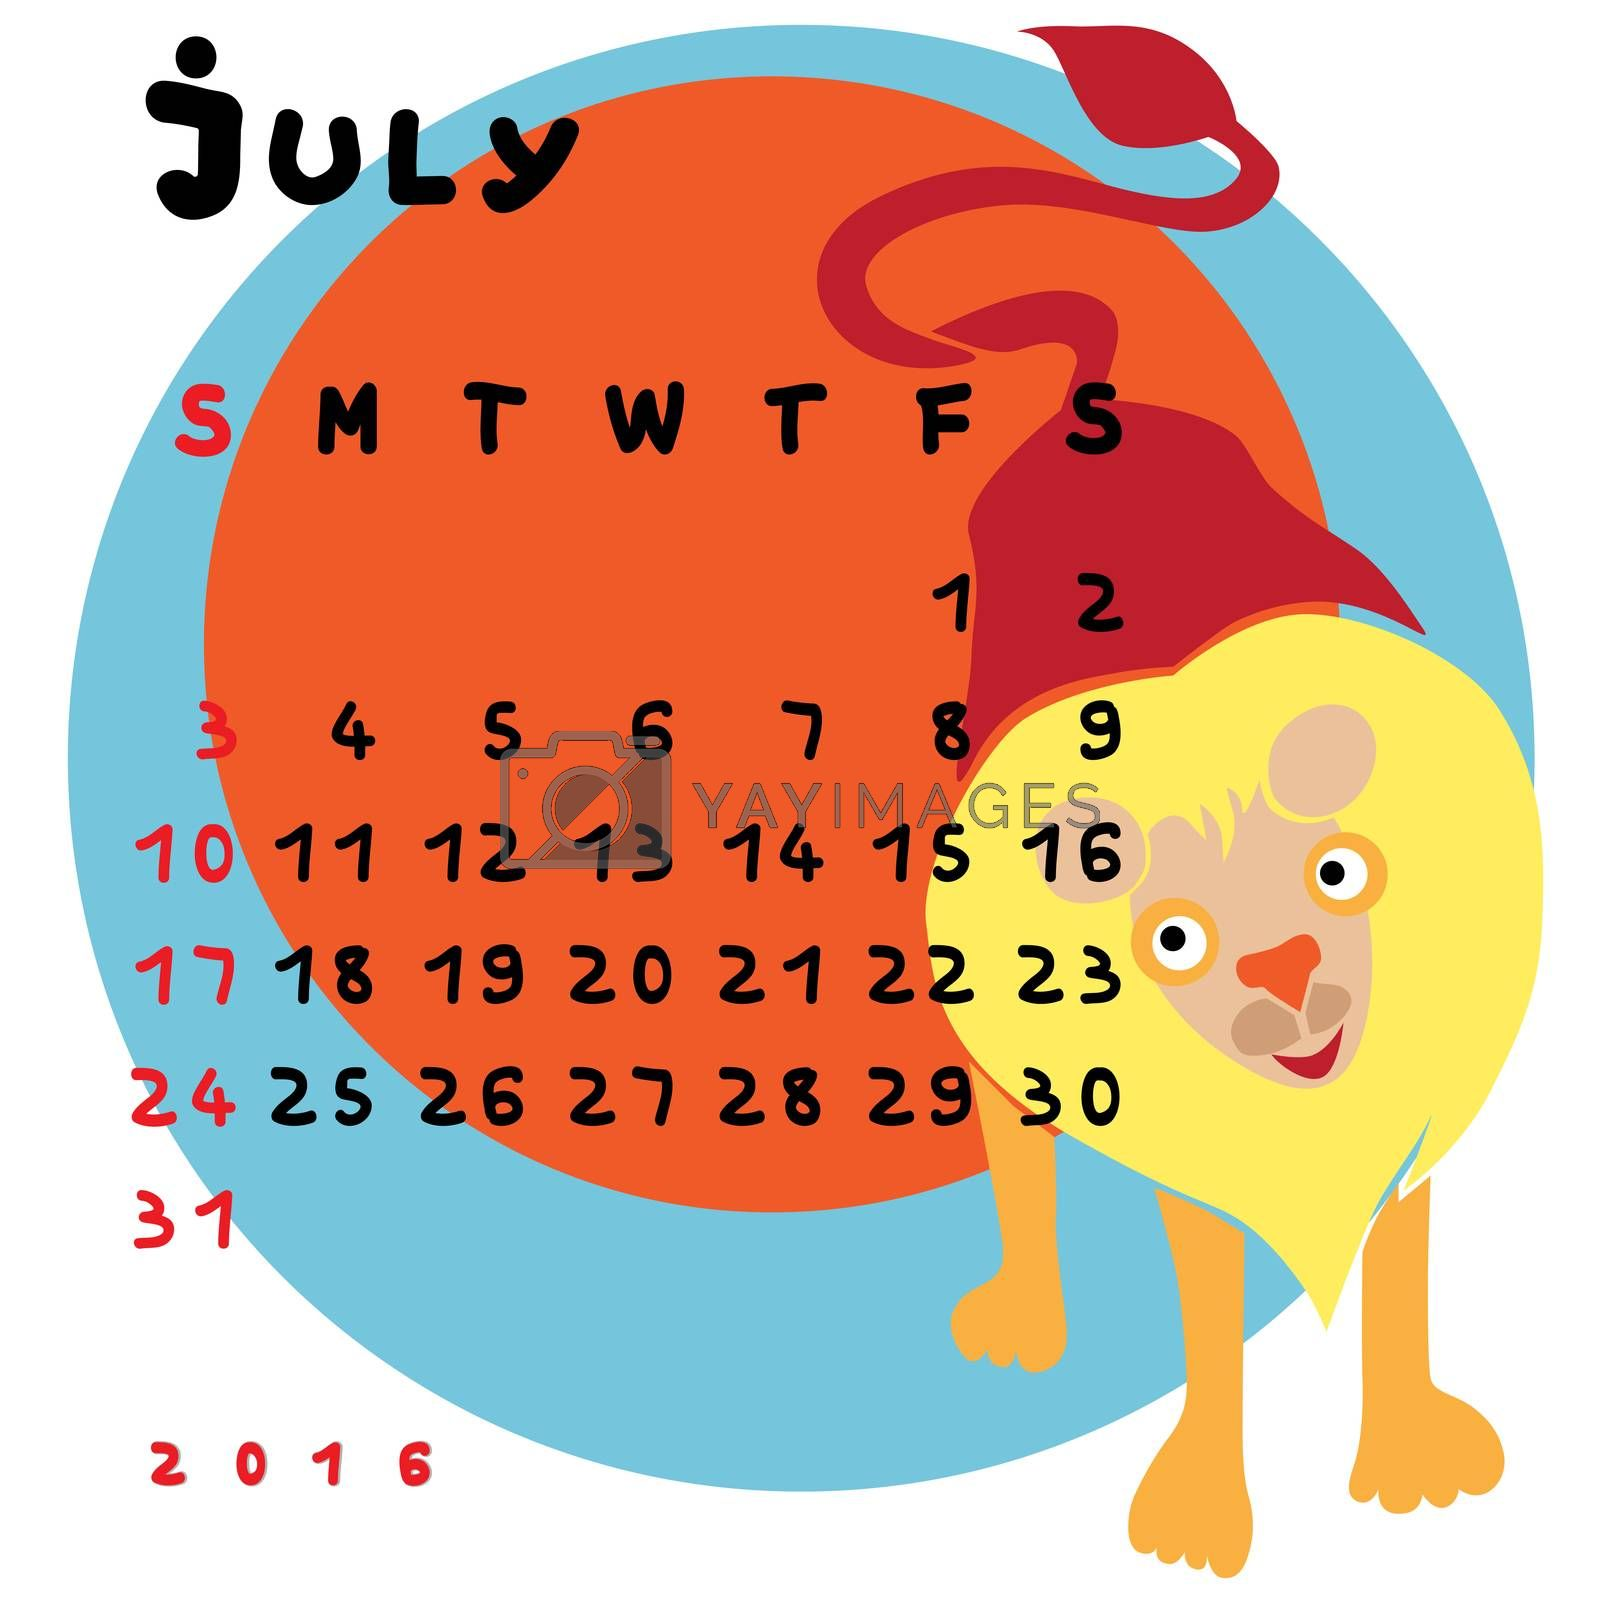 Graphic illustration of the calendar of JUly 2016 with original hand drawn text and colored clip art of Leo zodiac sign